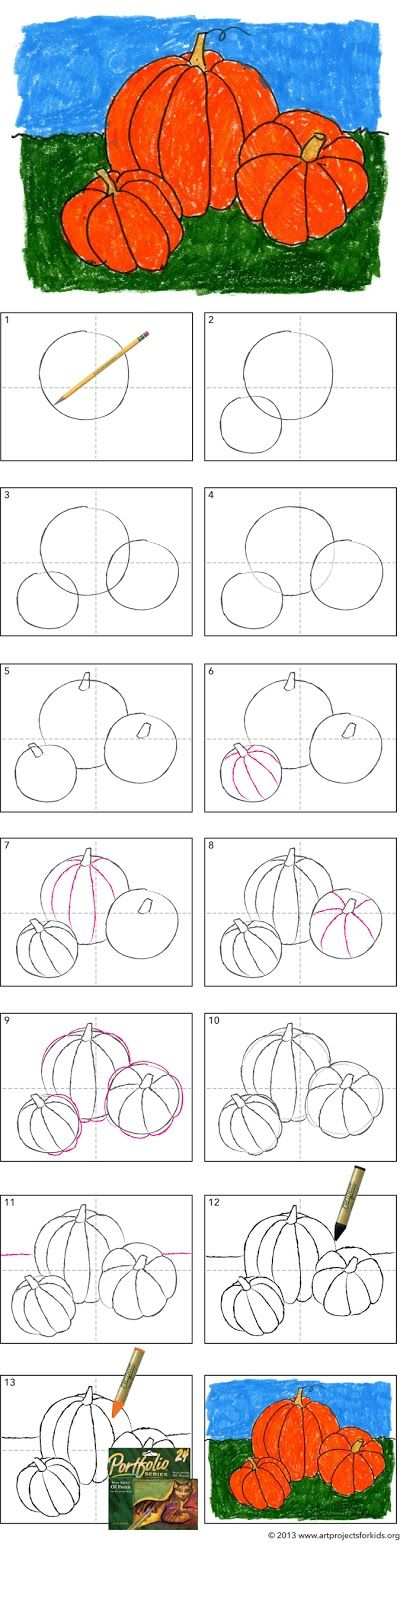 How to Draw a Pumpkin Tutorial